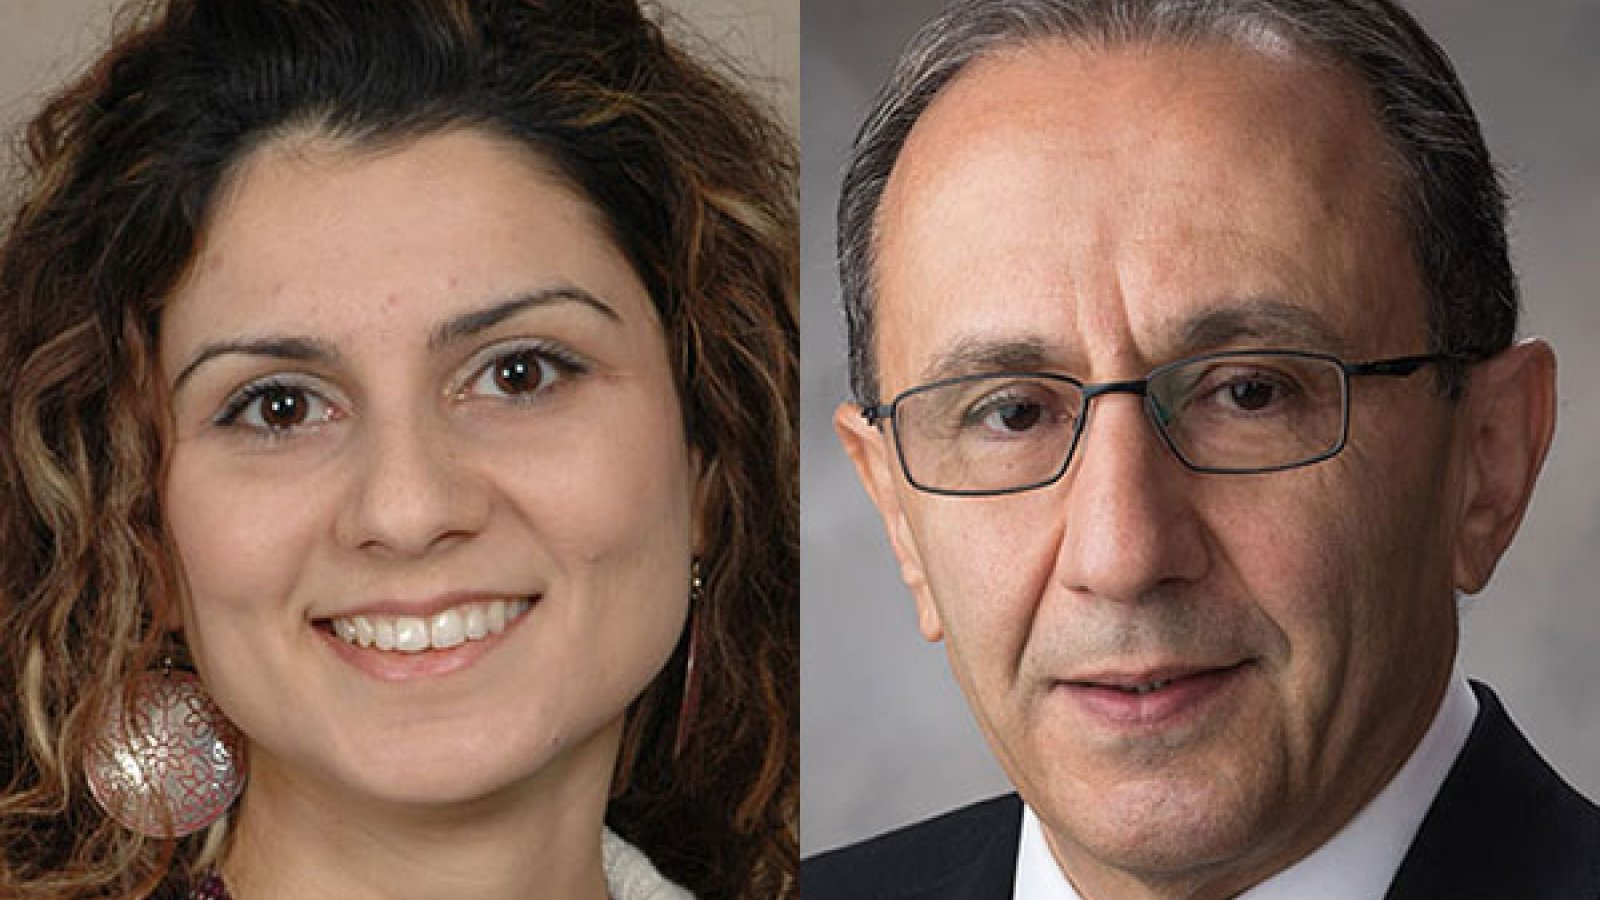 Ece Erdogmus, professor of architectural engineering and associate director of The Durham School of Architectural Engineering and Construction; and Hossein Noureddini, professor and chair of chemical and biomolecular engineering.